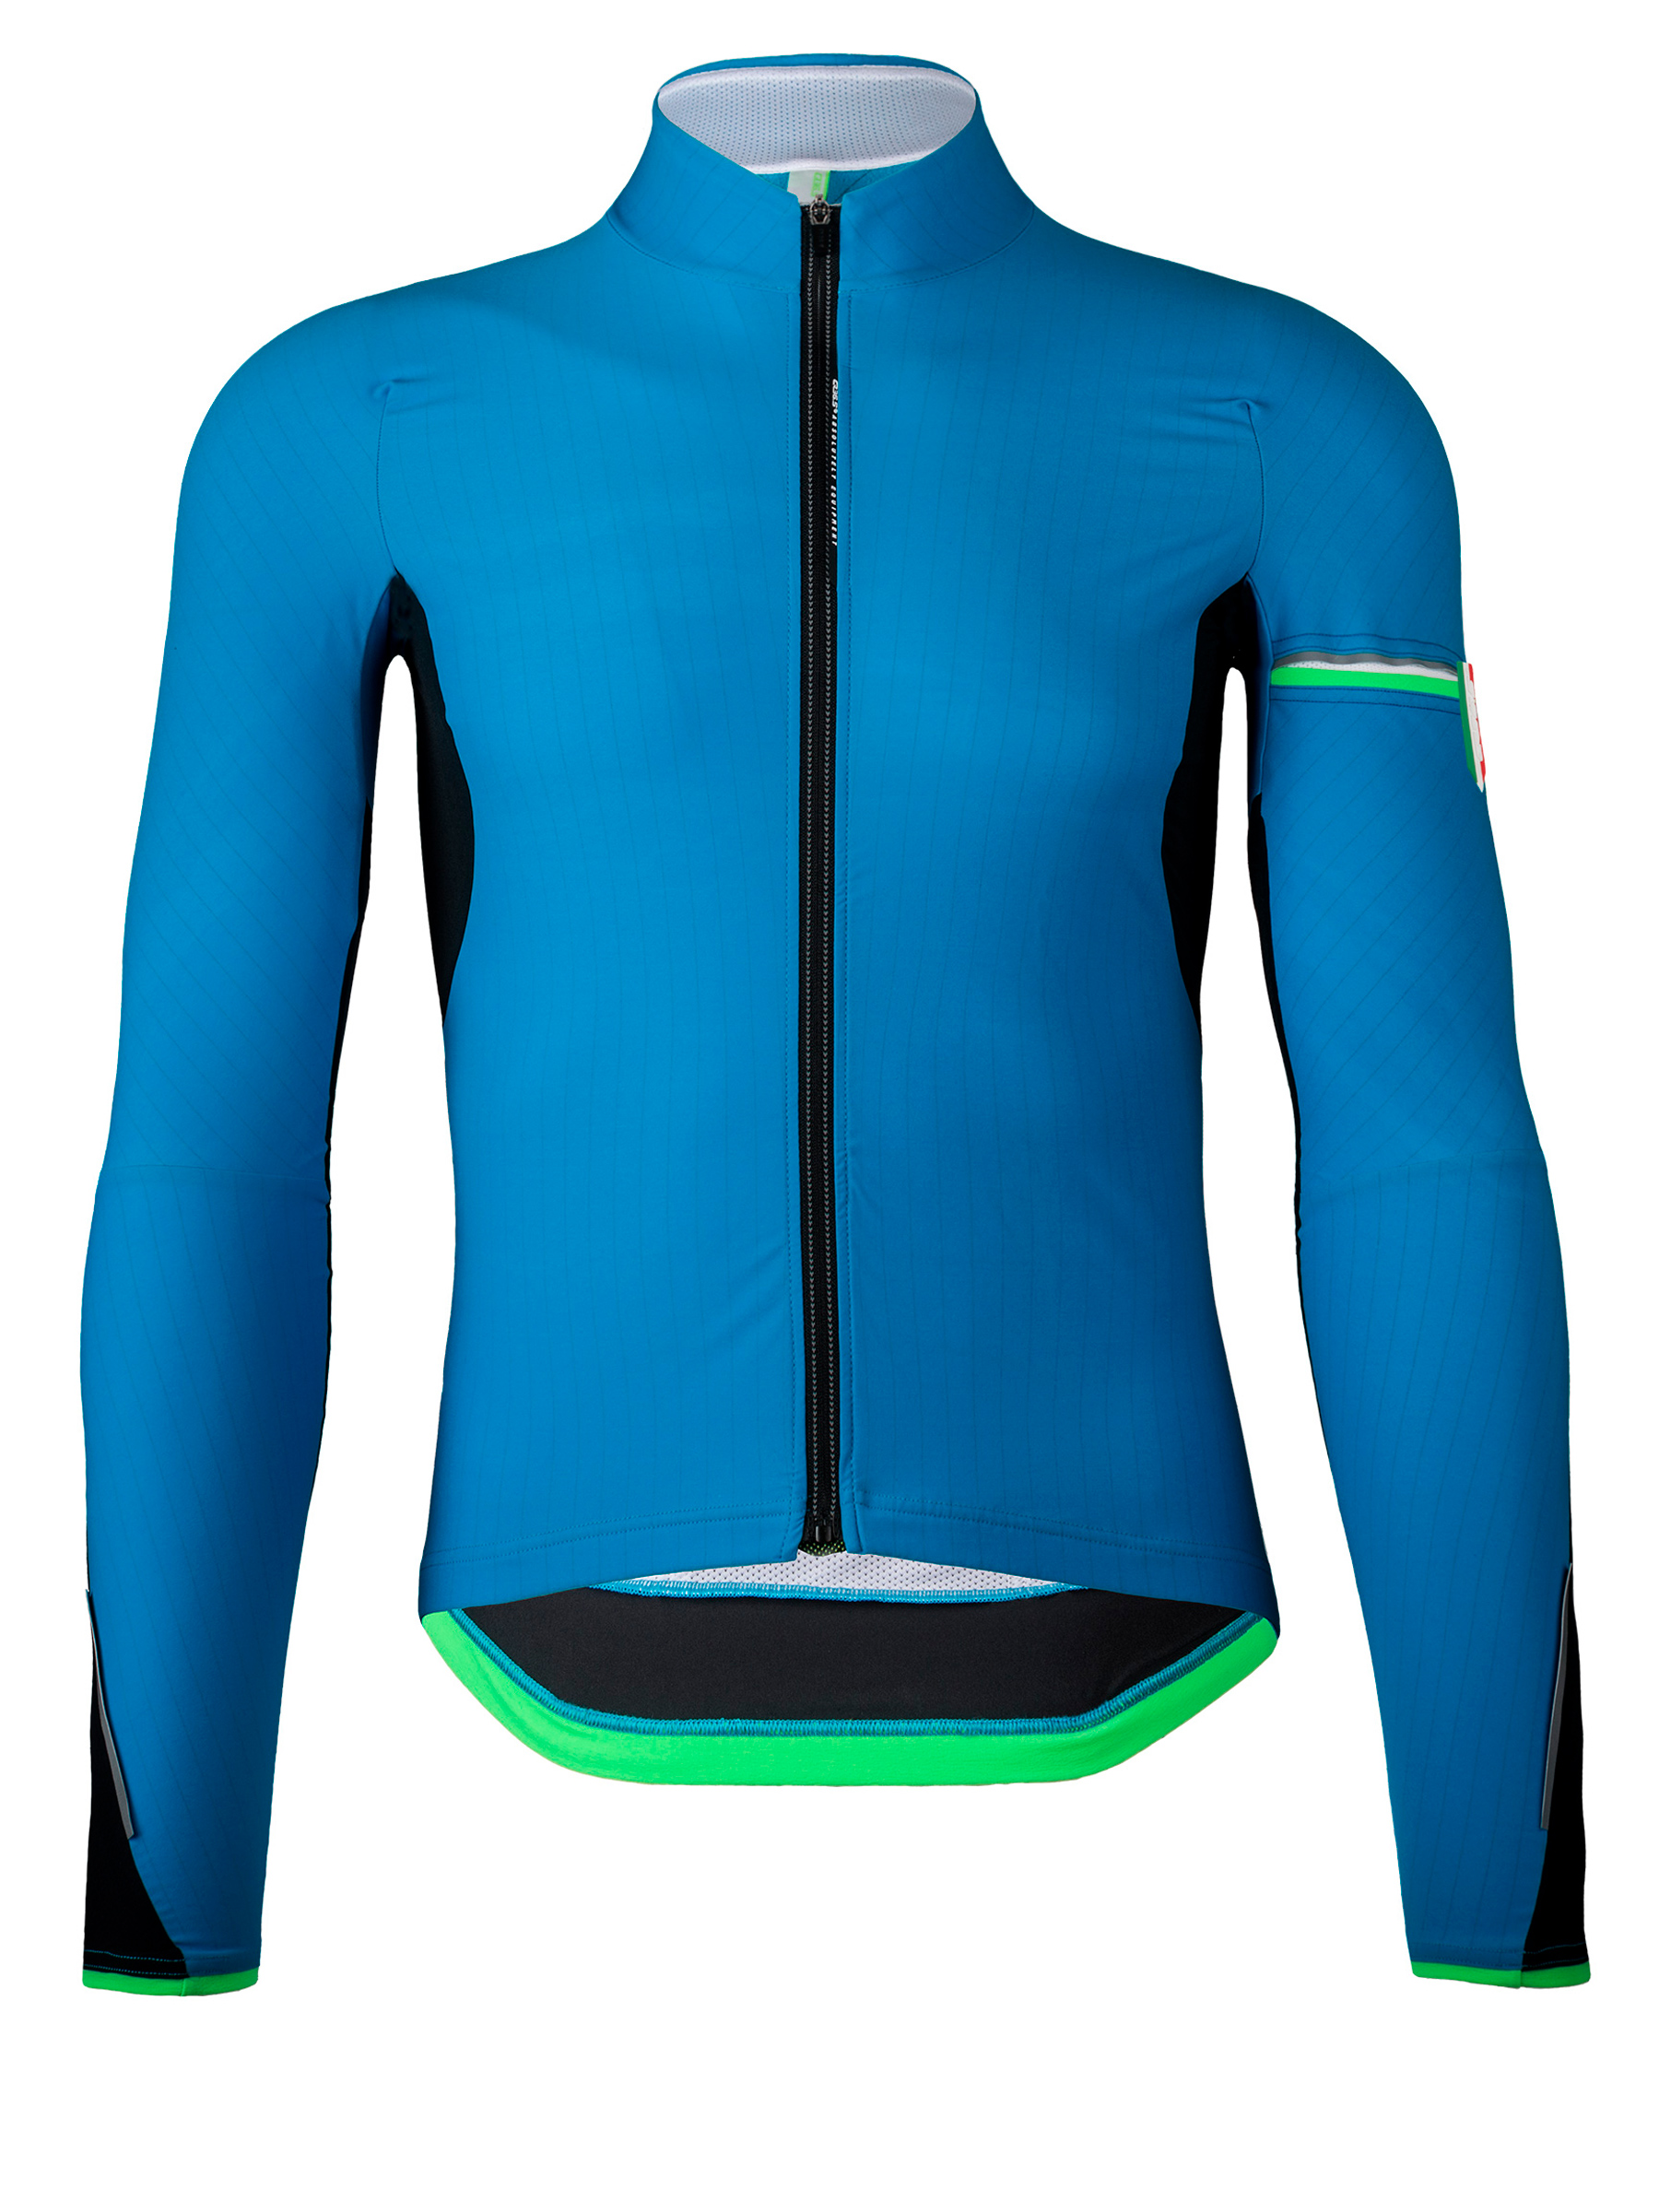 Mens cycling jacket long sleeve Hybrid Que blue Q36.5